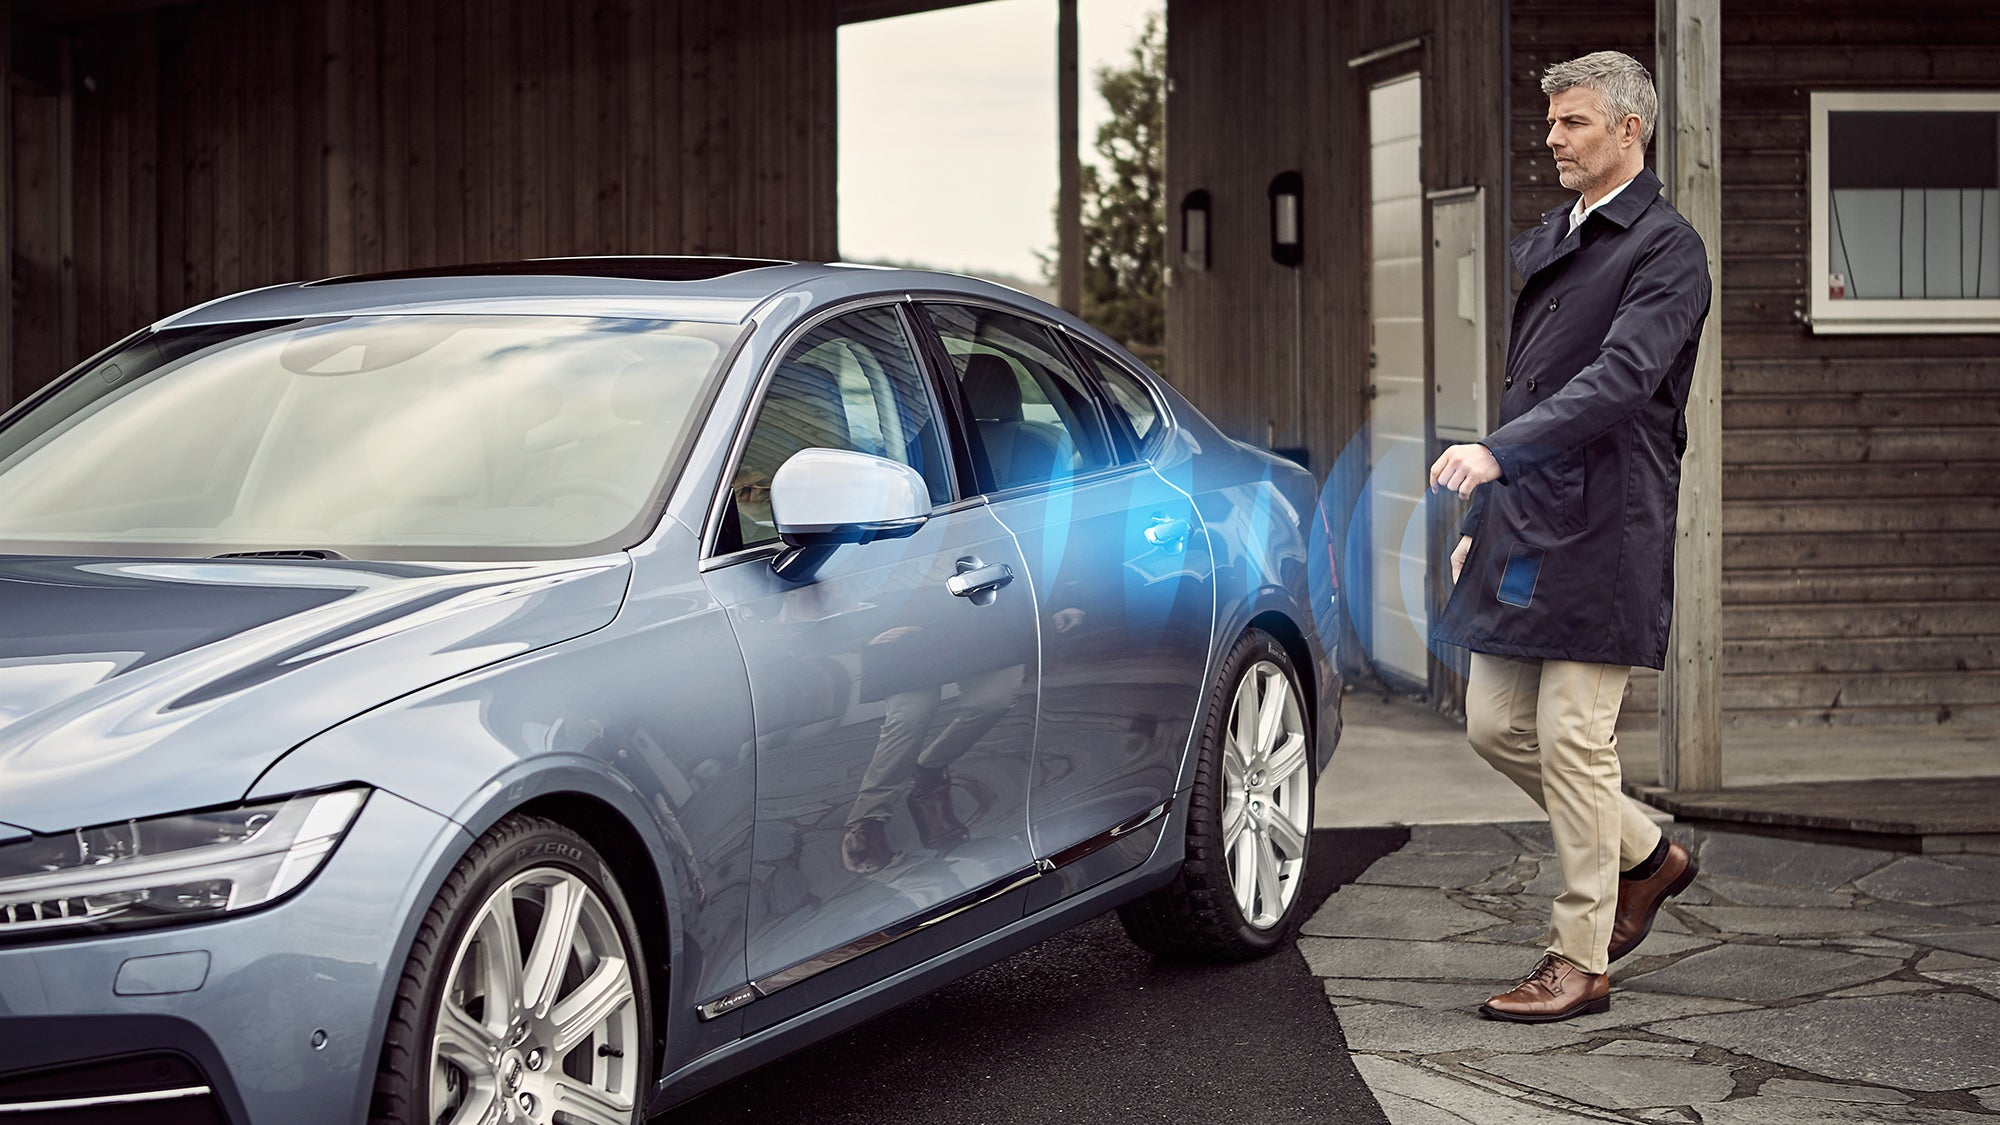 Volvo Brags About Making the First Car That Doesn't Need Keys